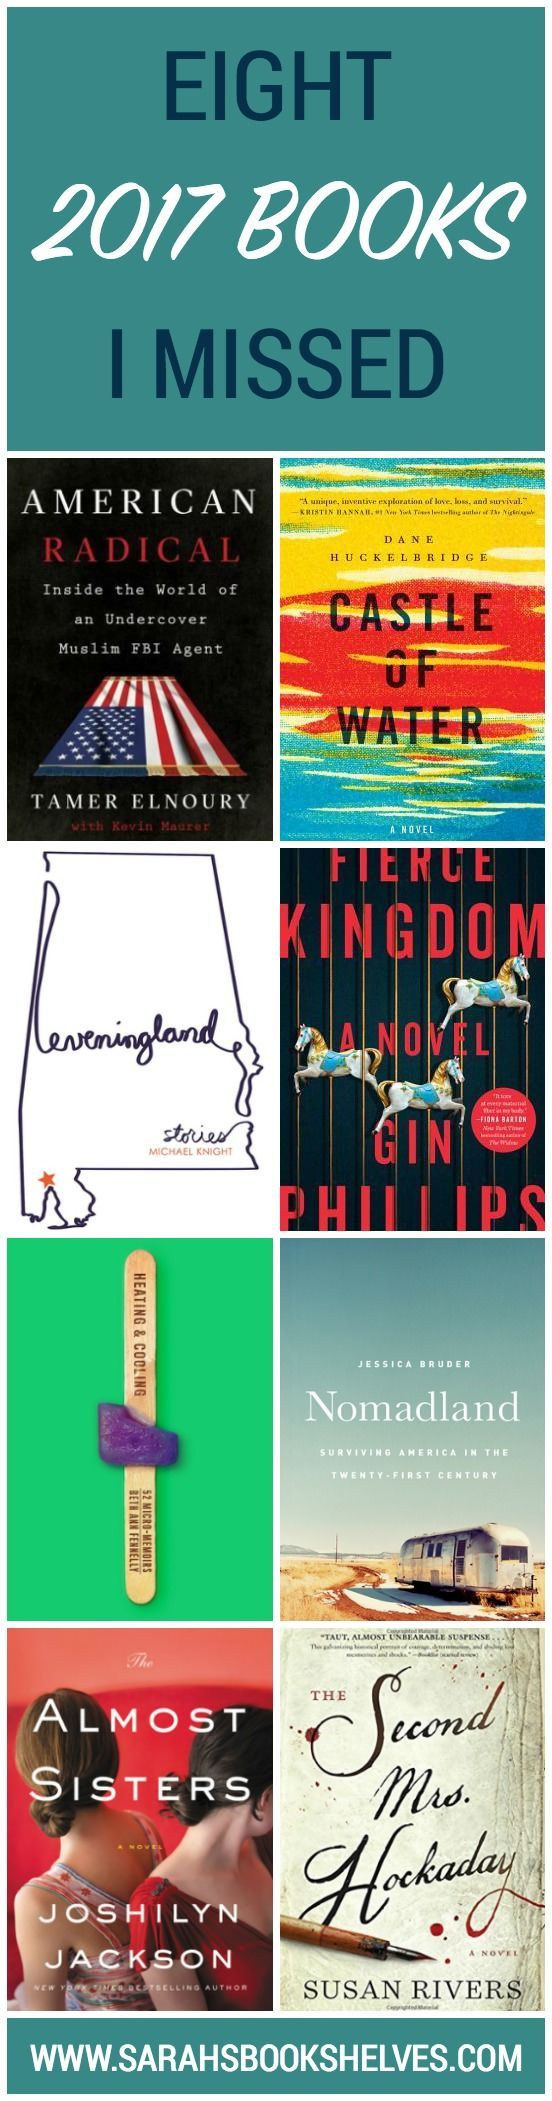 Eight 2017 Books I Missed...and most definitely plan to read next year (at least some of them). #reading #book #bookish #bookworms #booklovers #booklist